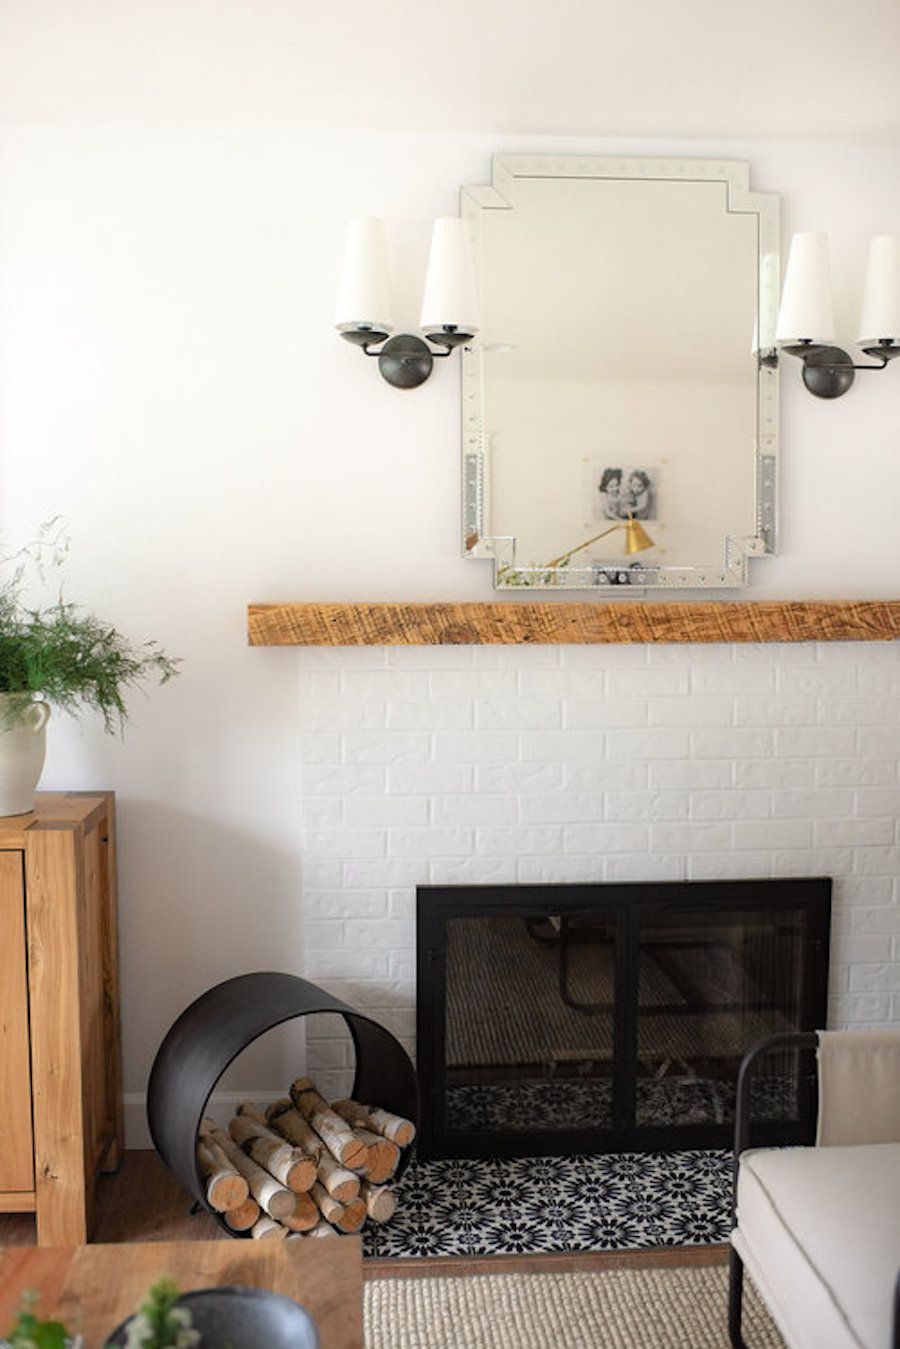 White fireplace with logs.